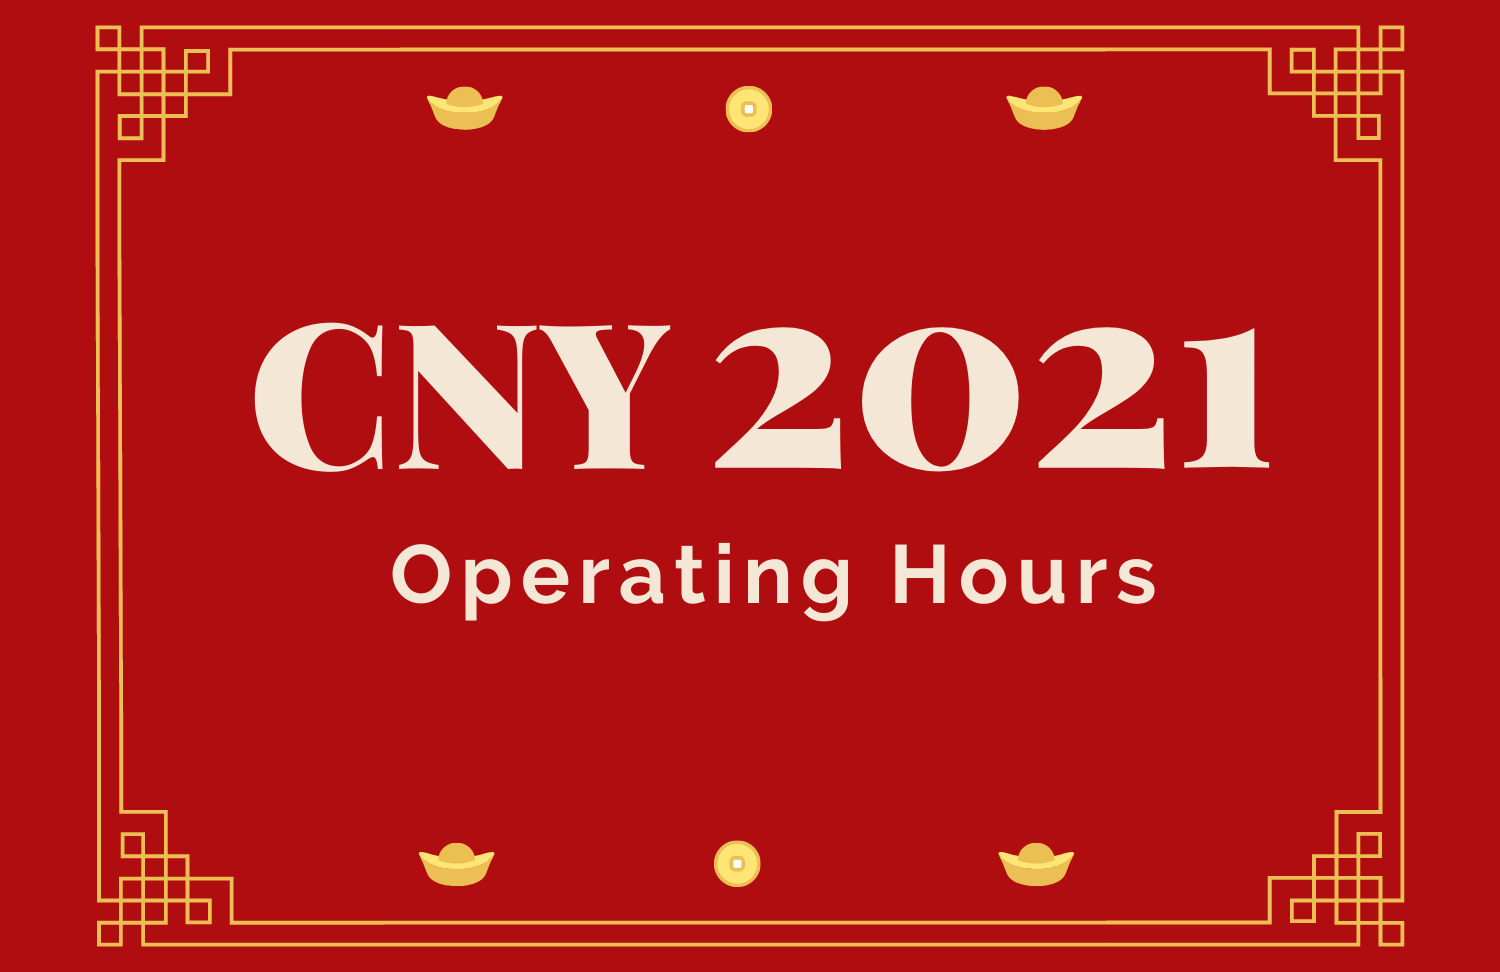 CNY 2021 Operating Hours